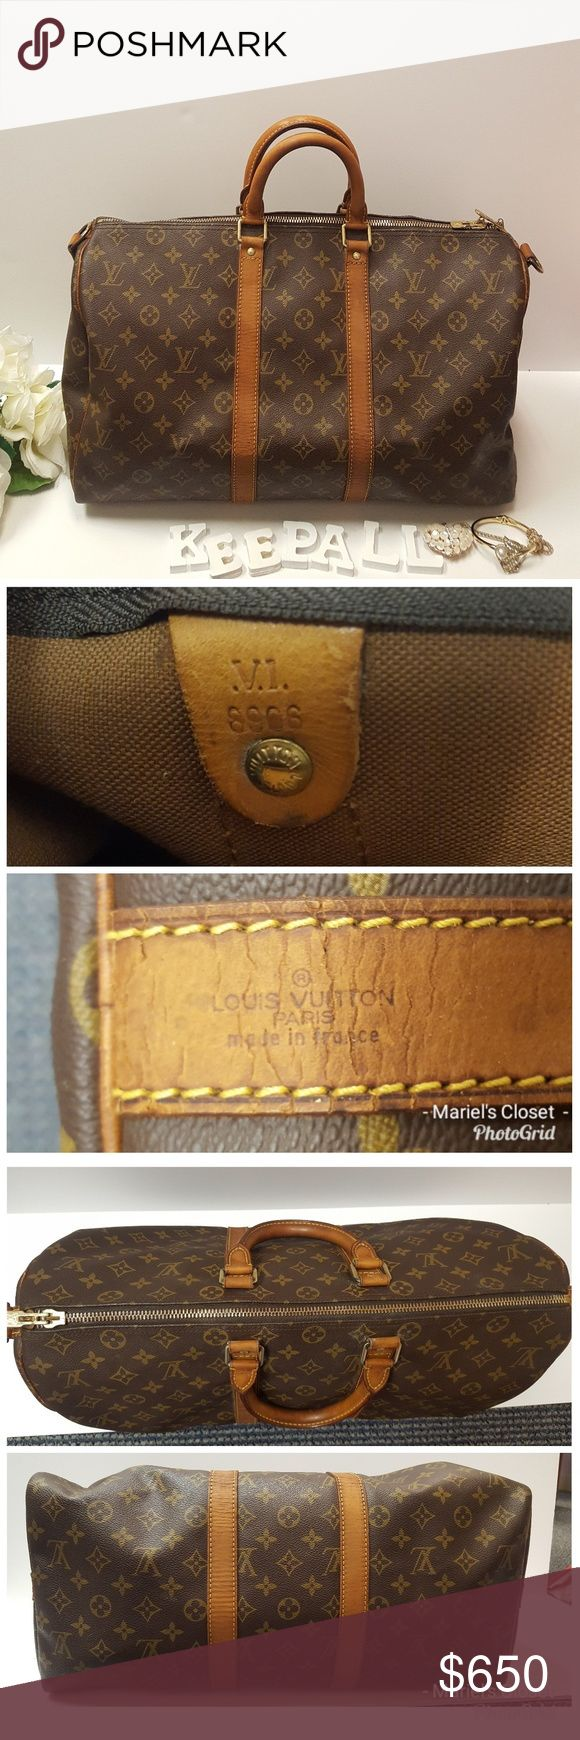 Authentic Louis Vuitton Keepall 45 Pre-owned. In good condition for it's age. No rip, no tear, no scuffing and no piping issue. There are some normal signs of wear Outside: suntanned, stain/crack on the vachetta and  handle. Patina on the handle. Hardware are in great condition just a Minor metal tarnished. wrinkle.  Inside: clean inside  Odor: no offensive odor.  Zipper: zipper working properly Louis Vuitton Bags